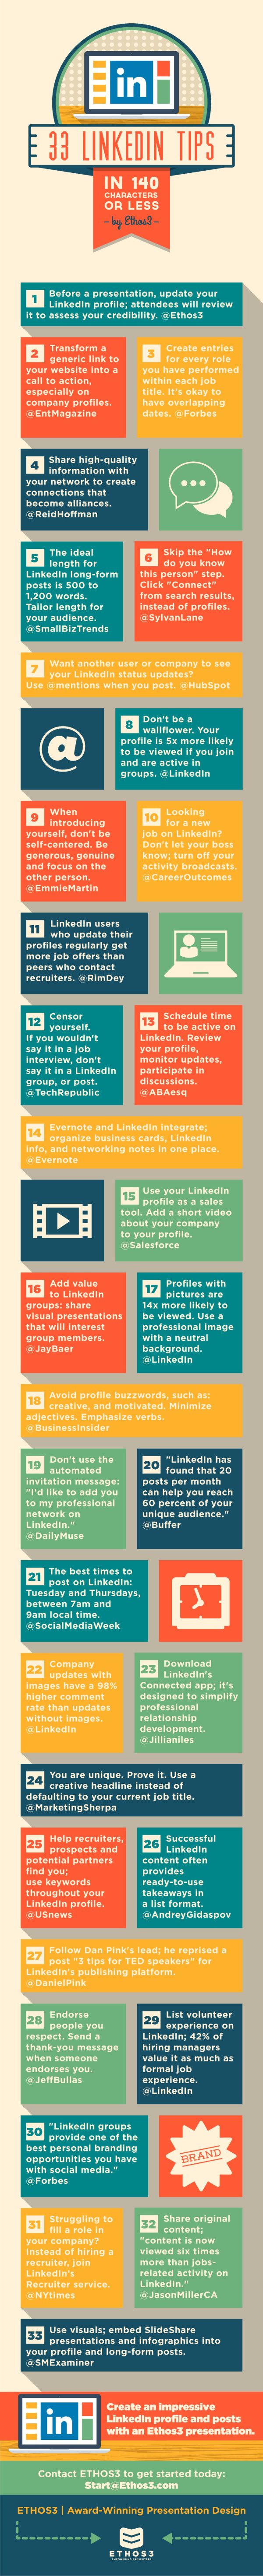 LinkedIn Advice Infographic